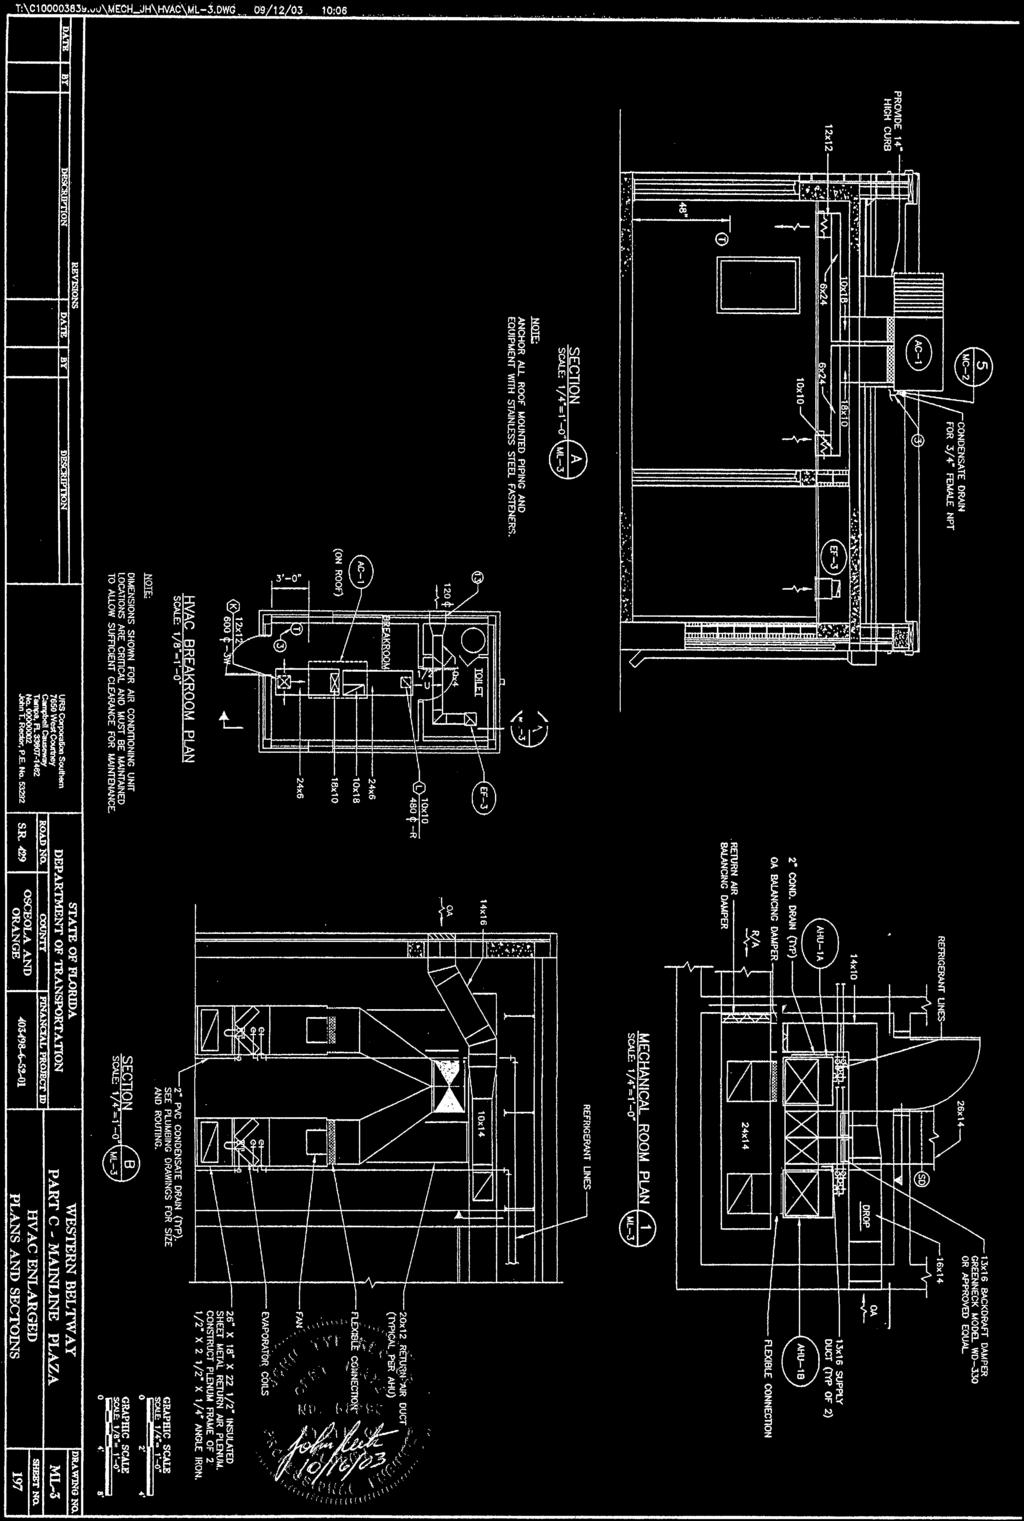 Attachments Itb Dot 16 Rm Heating Ventilation And Air Conditioning Hvac Plumbing Drawing 28 Attachment G Building As Built Plans Sheet No 013